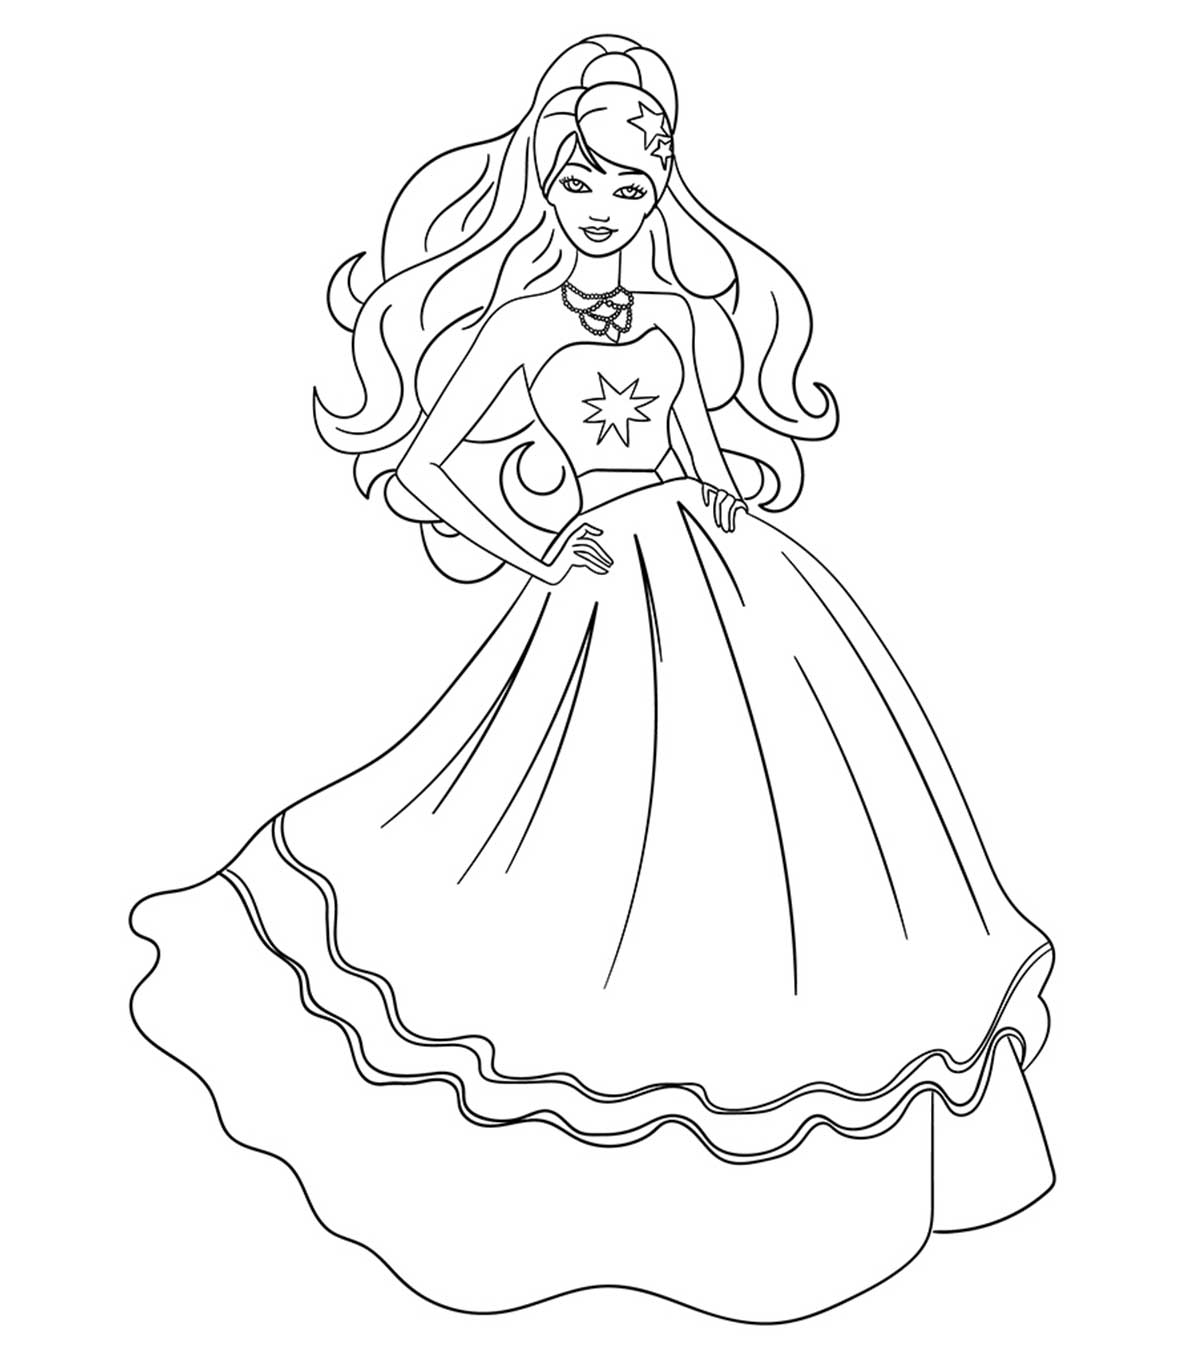 Printable : Princess Charm School Coloring Page | 1350x1200